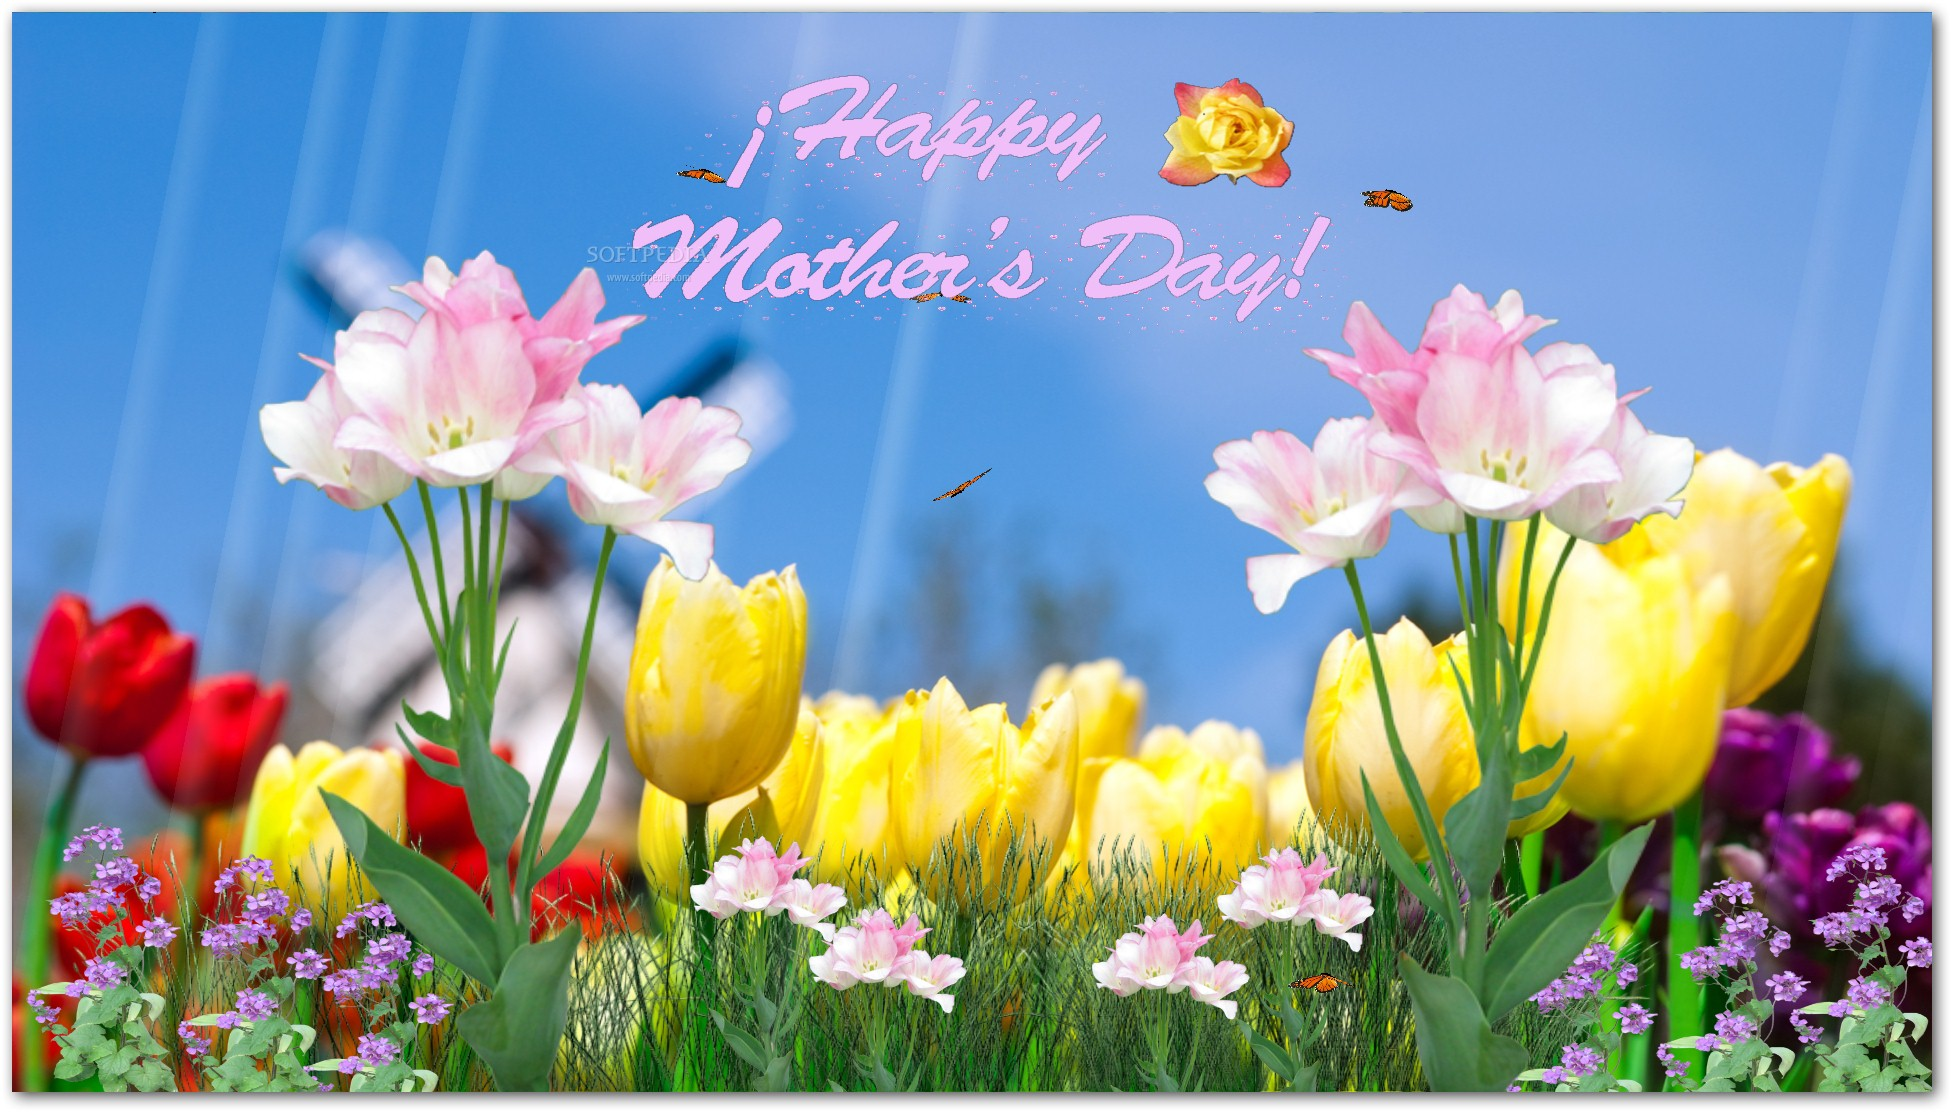 Happy Mothers Day Screensaver Download 1952x1112